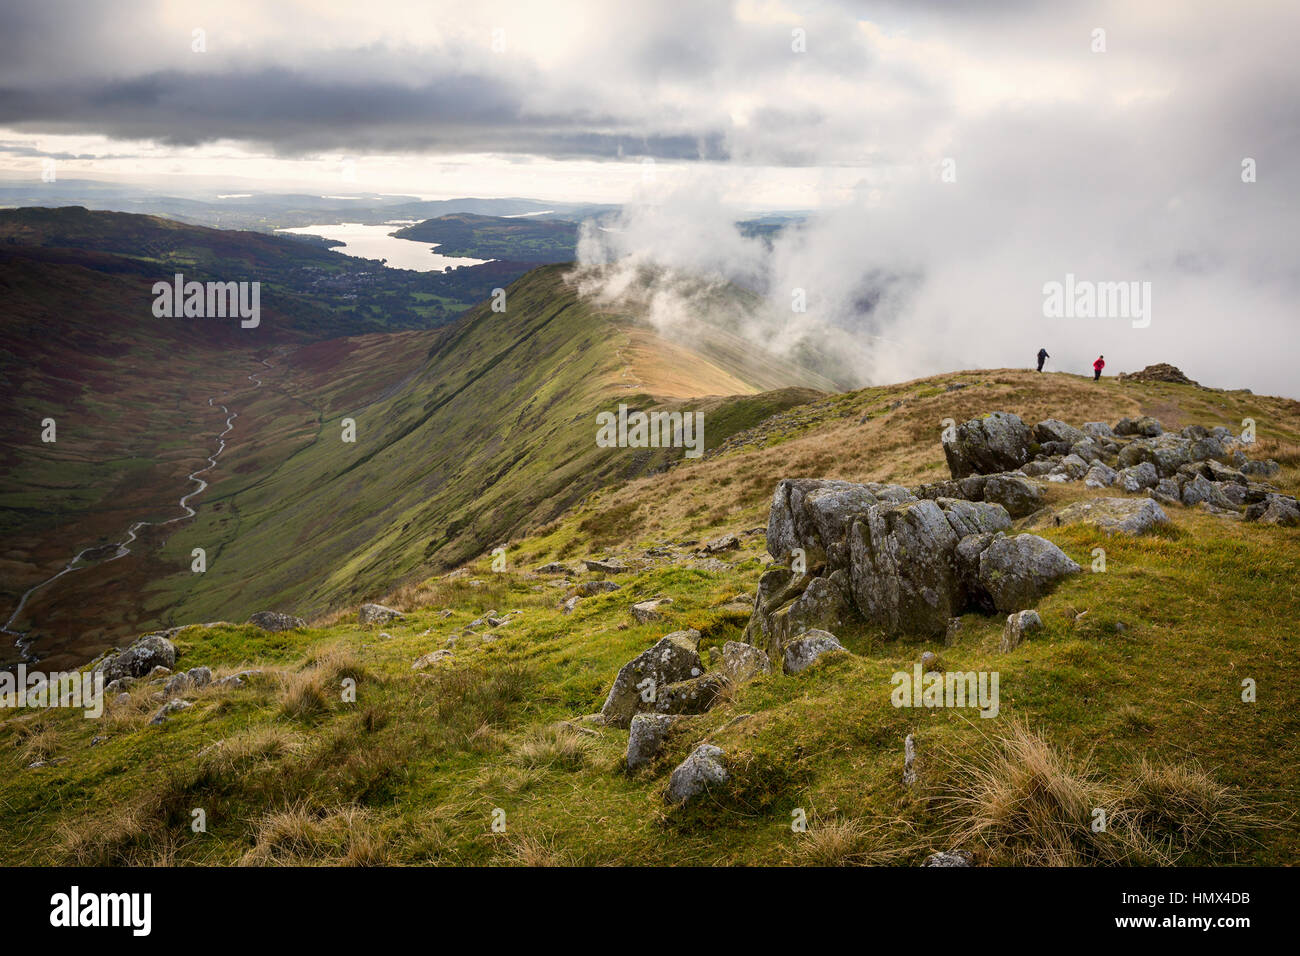 View of Rydal Fell and Lake Windermere from the top of Great Rigg on the Fairfield Horseshoe in Cumbria, UK - Stock Image